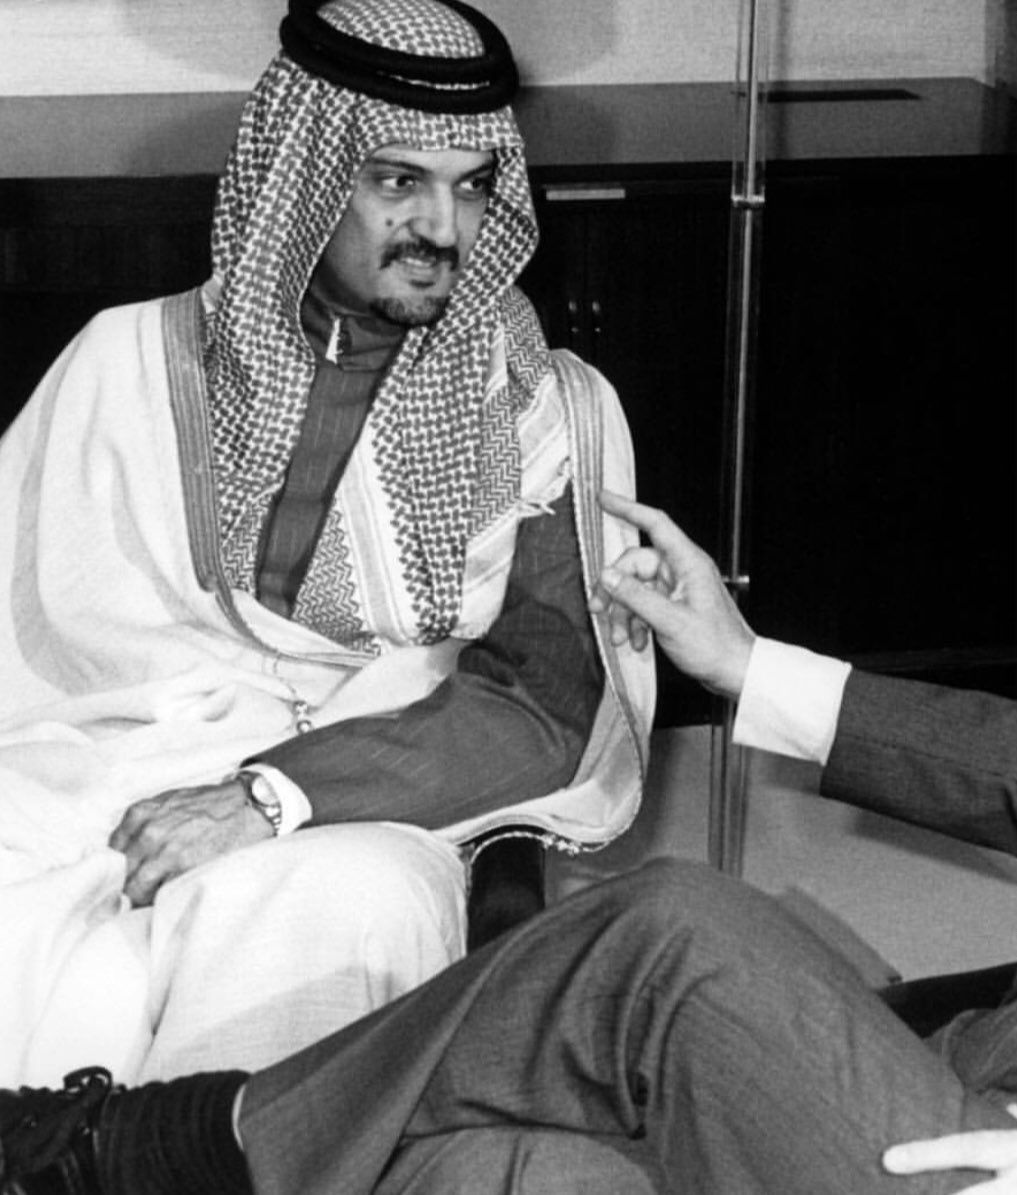 Pin By Nn Nn On The Kingdom Profile Picture Images King Salman Saudi Arabia Old Egypt